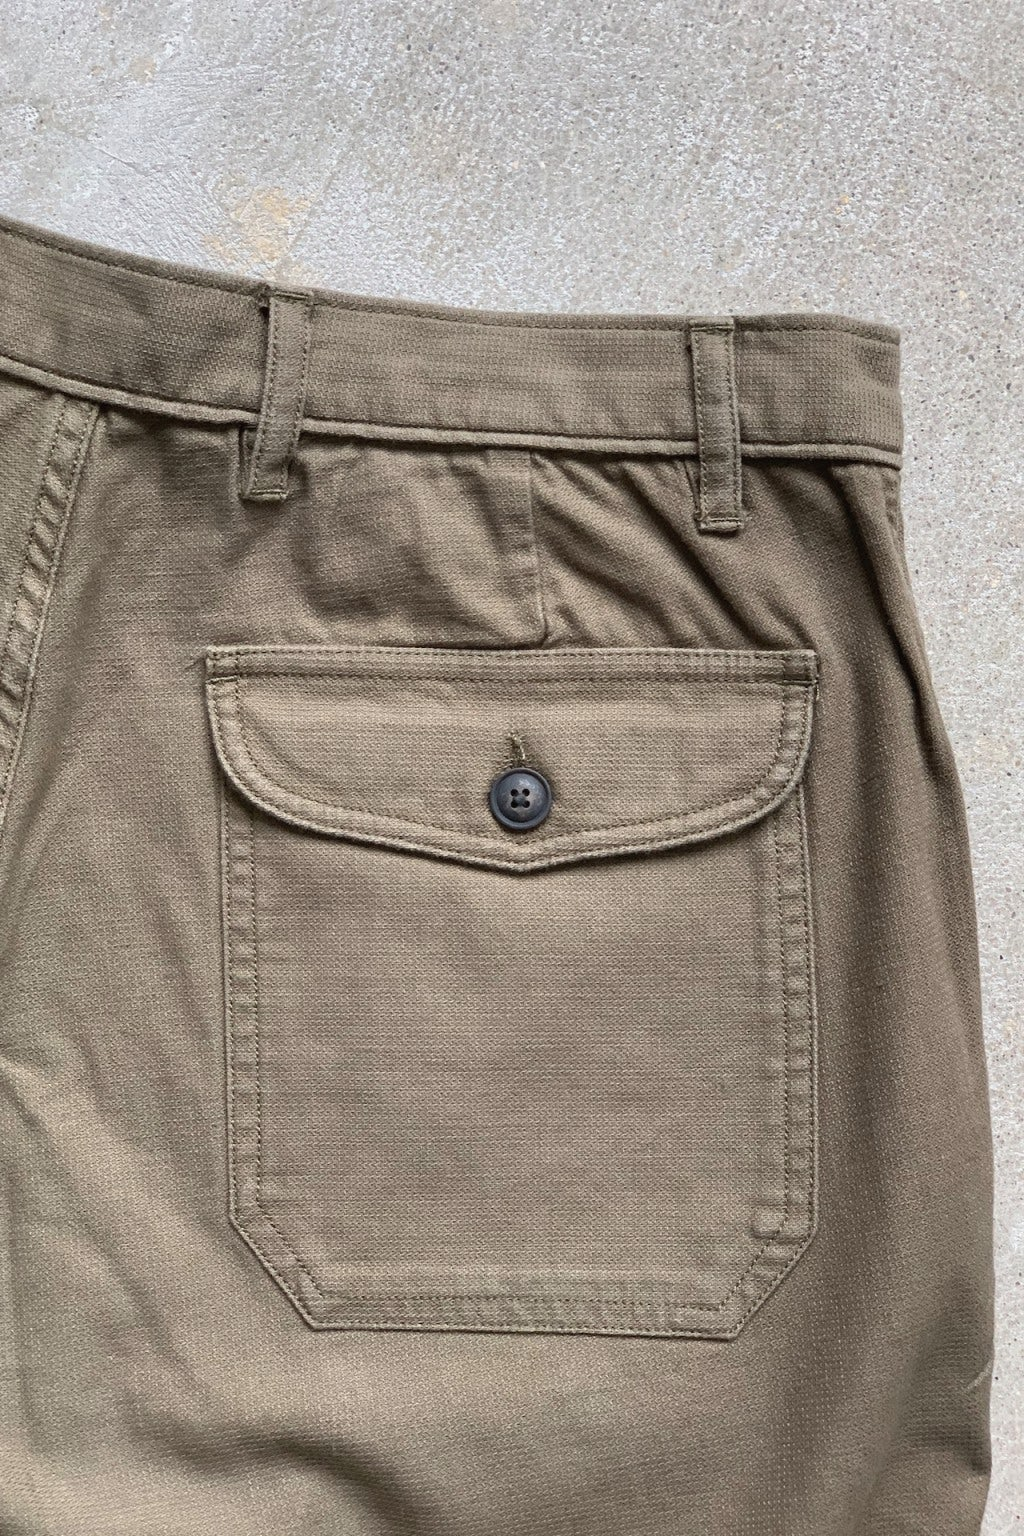 Corridor Olive Dobby Patch Pocket Shorts Olive